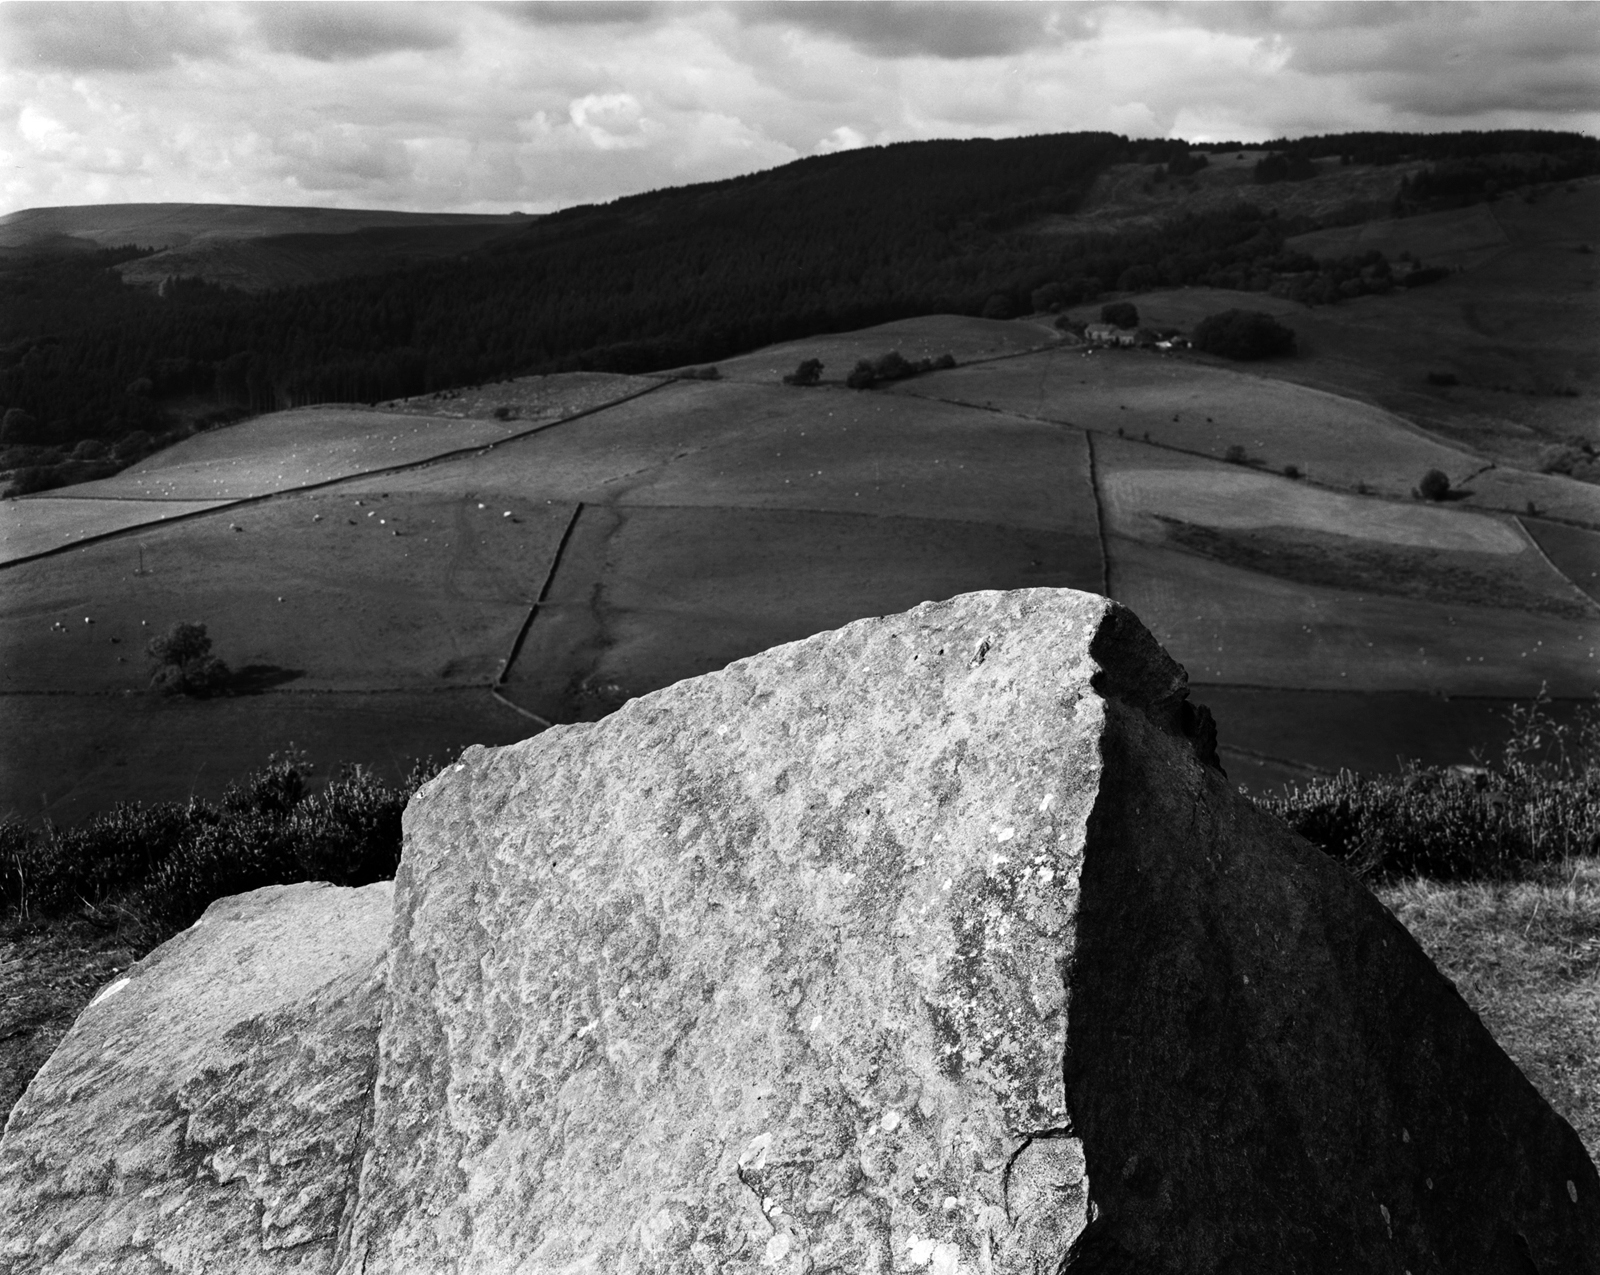 Image from  Shaped by Stone.  A view over Teggs Nose country park, countryside outside Macclesfield.  Photograph by Mario Popham